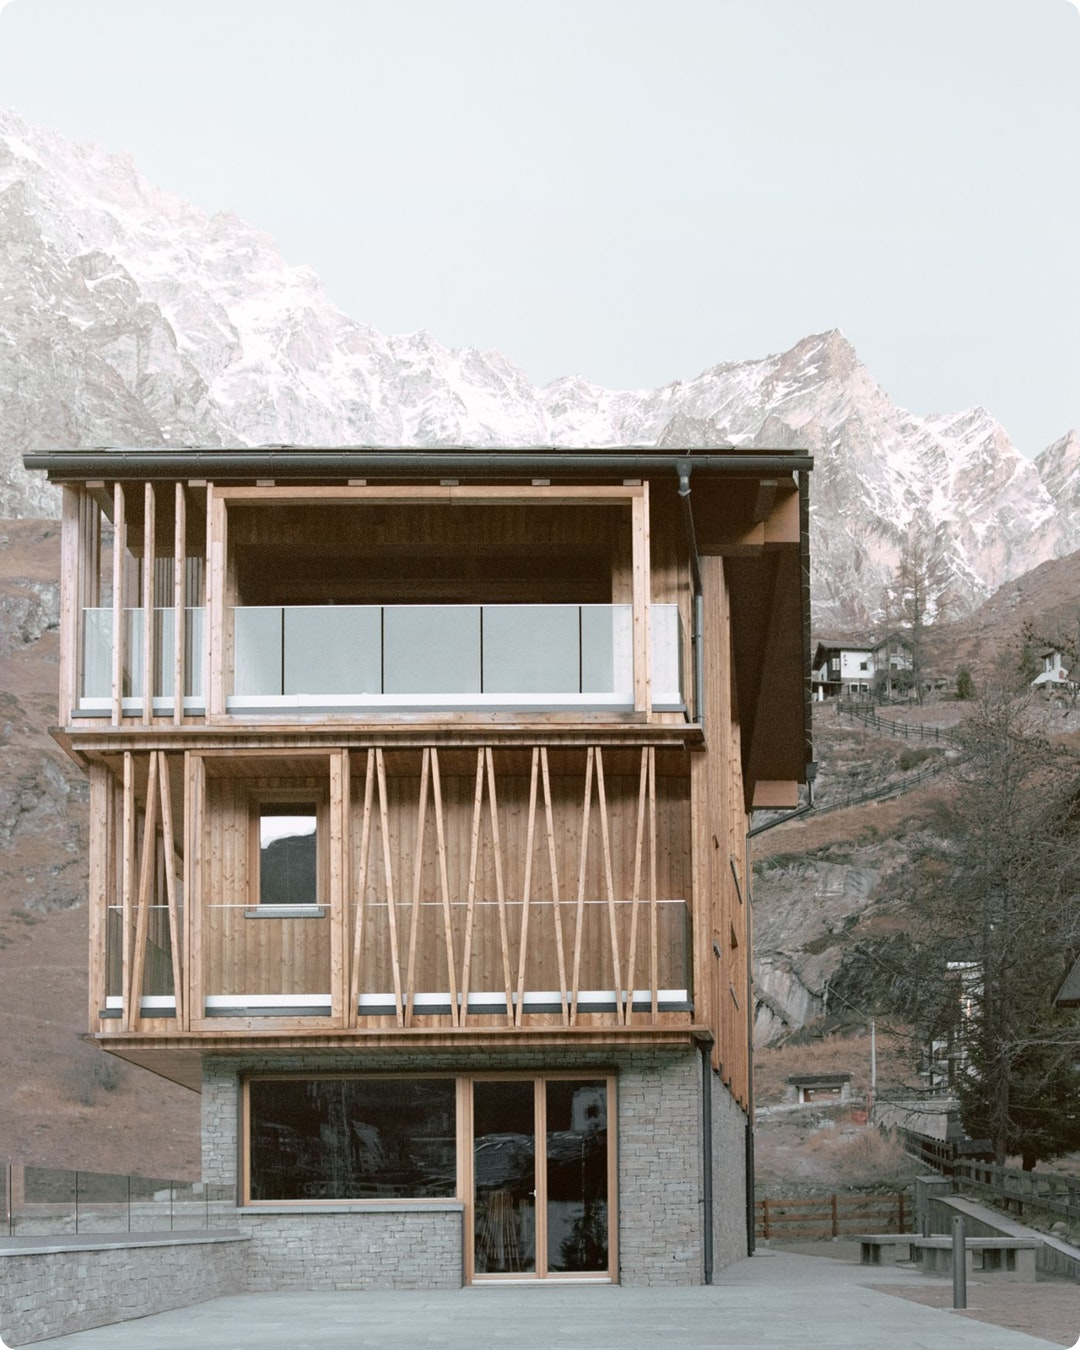 The Climber's Refuge by LCA Architetti